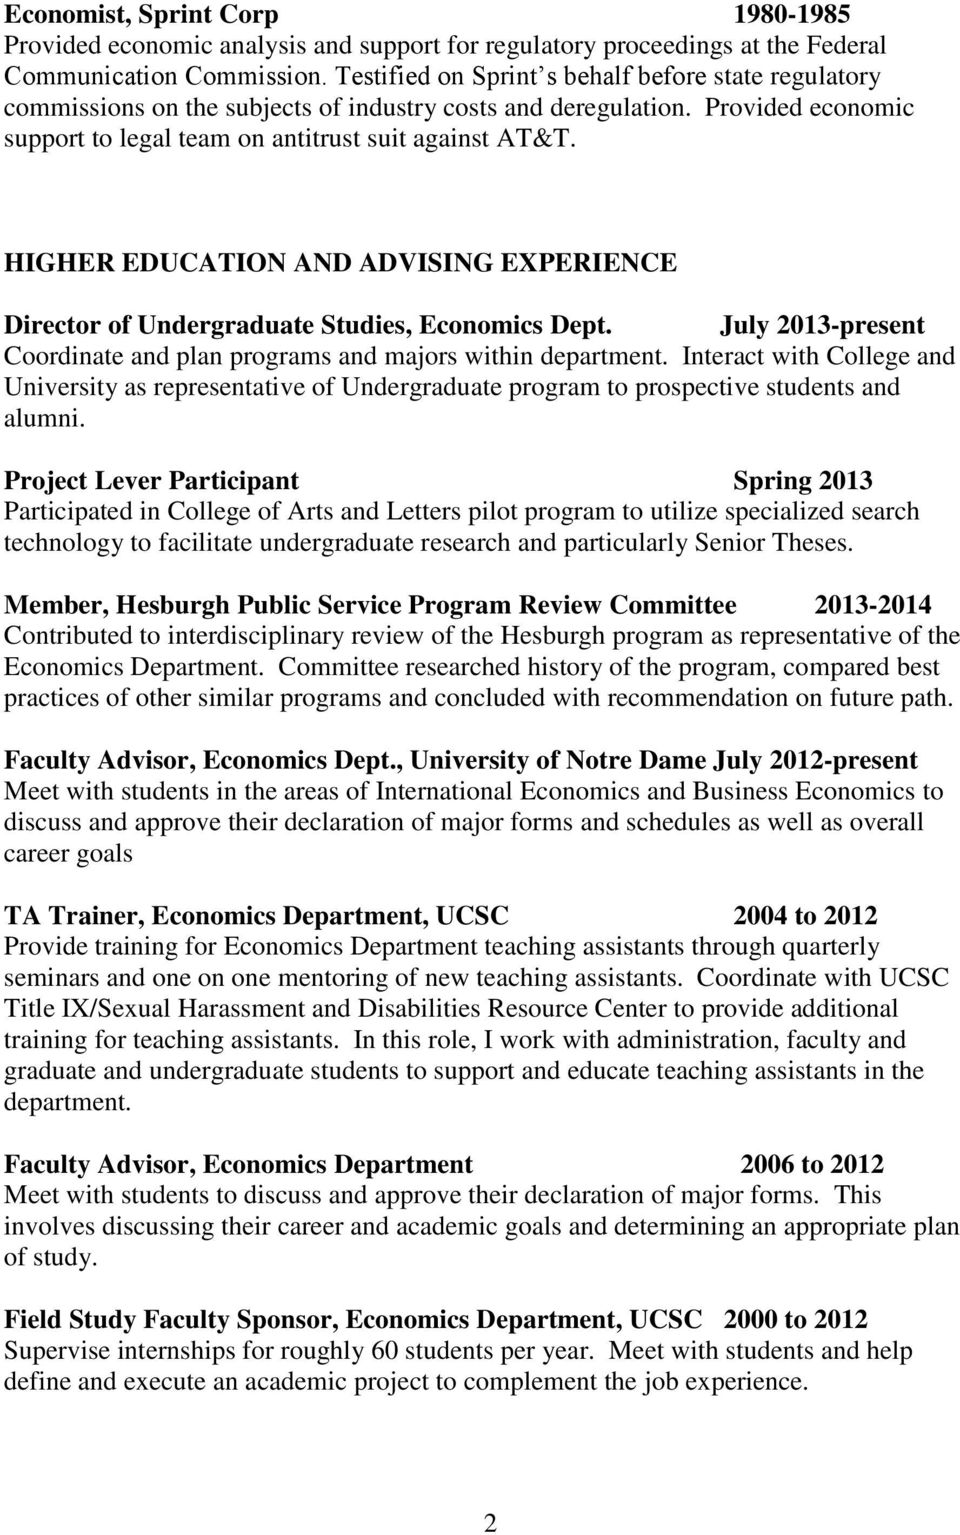 HIGHER EDUCATION AND ADVISING EXPERIENCE Director of Undergraduate Studies, Economics Dept. July 2013-present Coordinate and plan programs and majors within department.